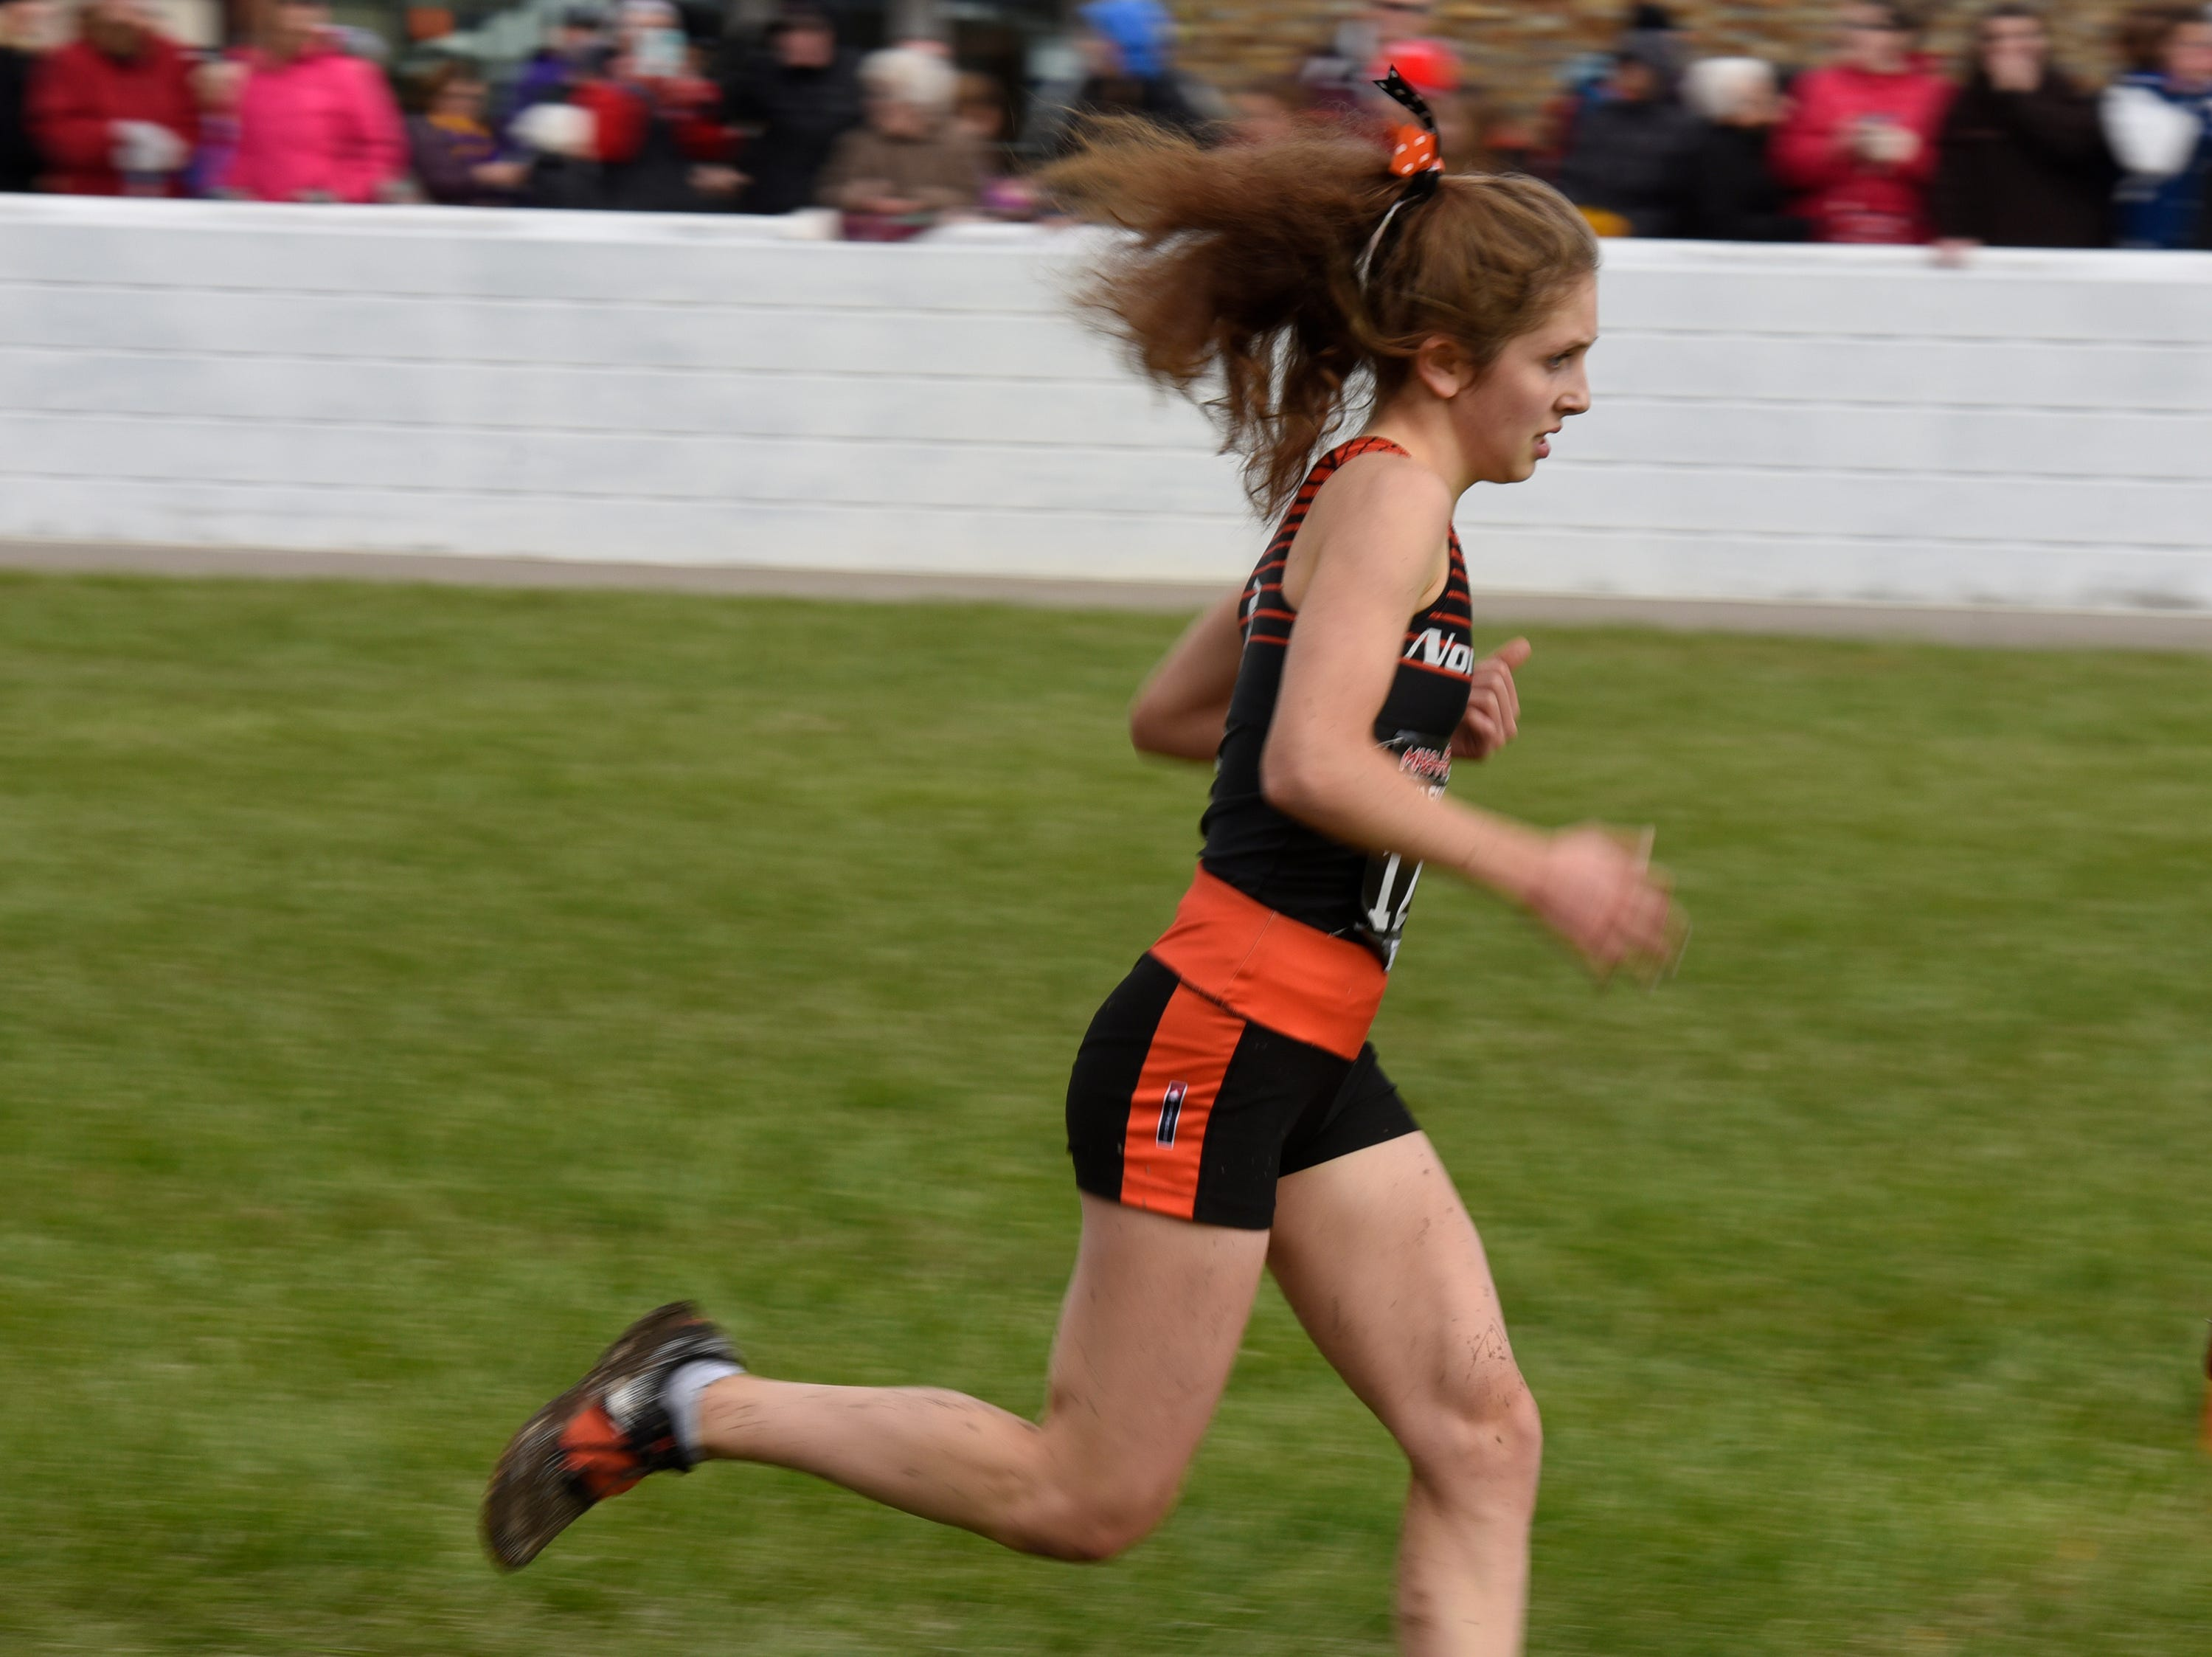 Northville's Emma Munro during the Division 1 2018 cross country finals at Michigan International Speedway.